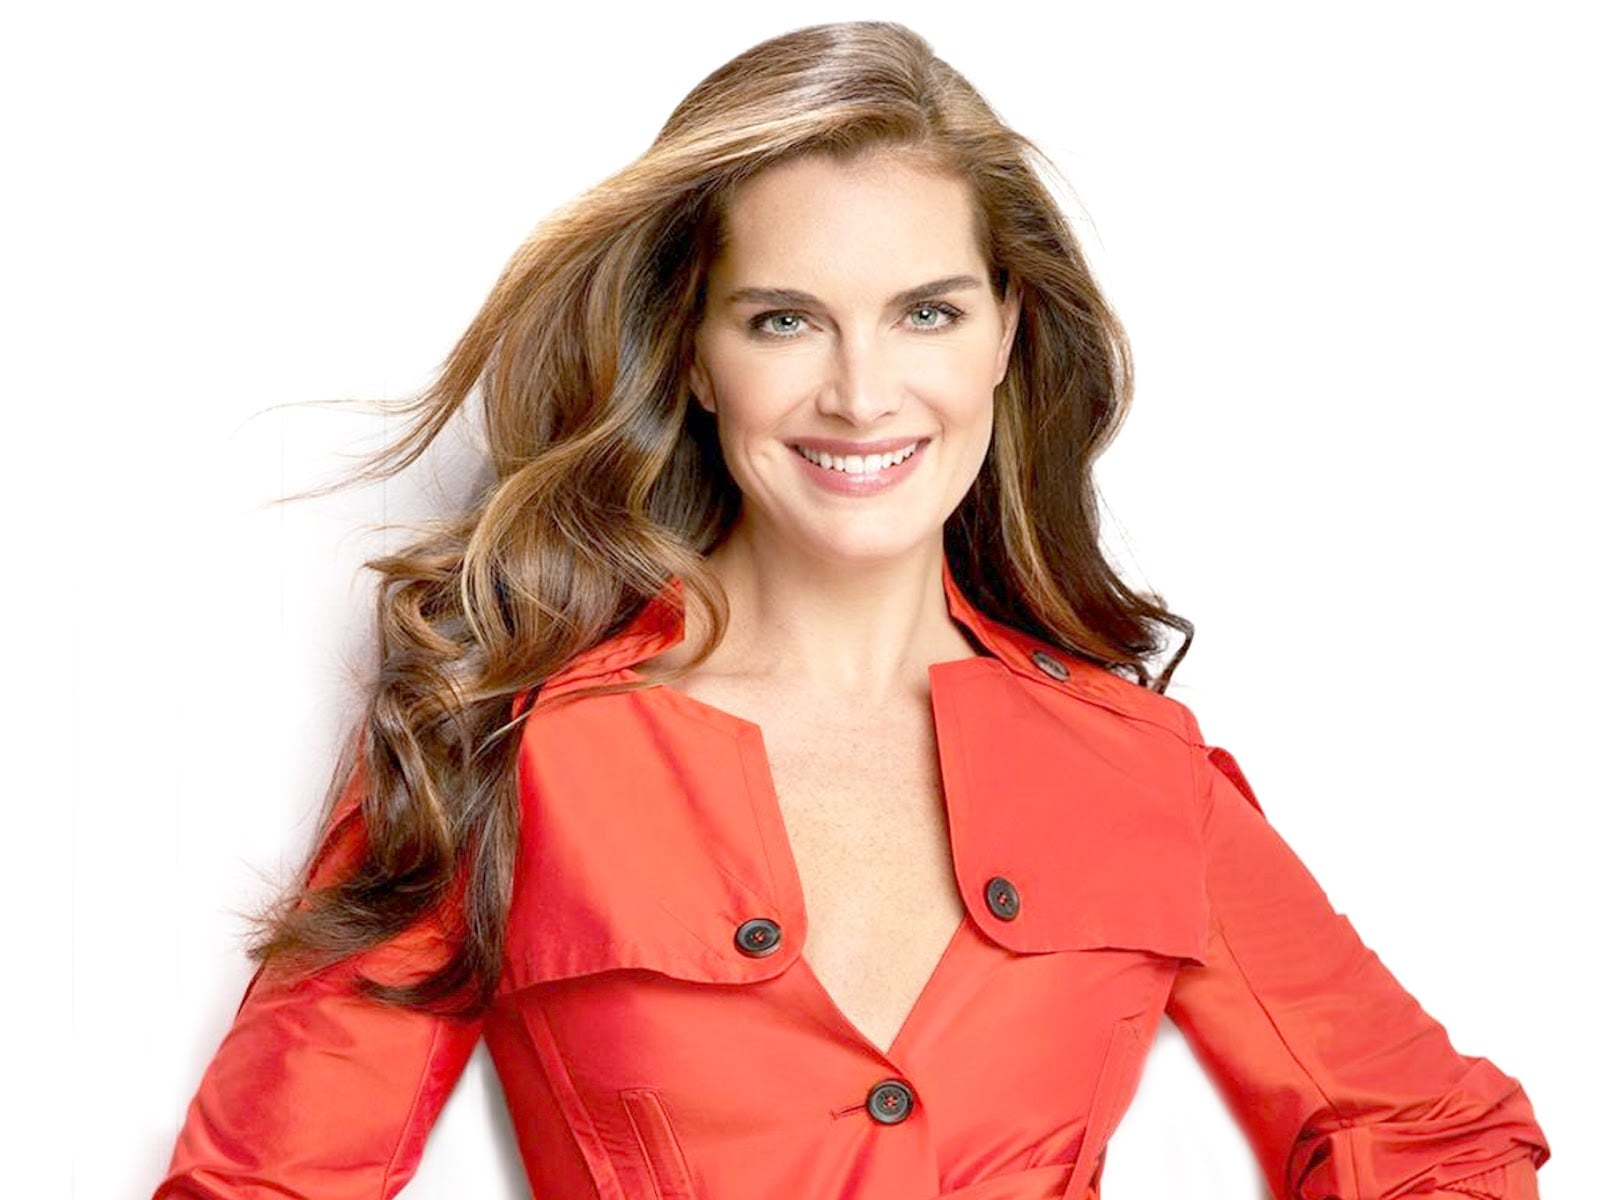 Brooke Shields Wallpaper